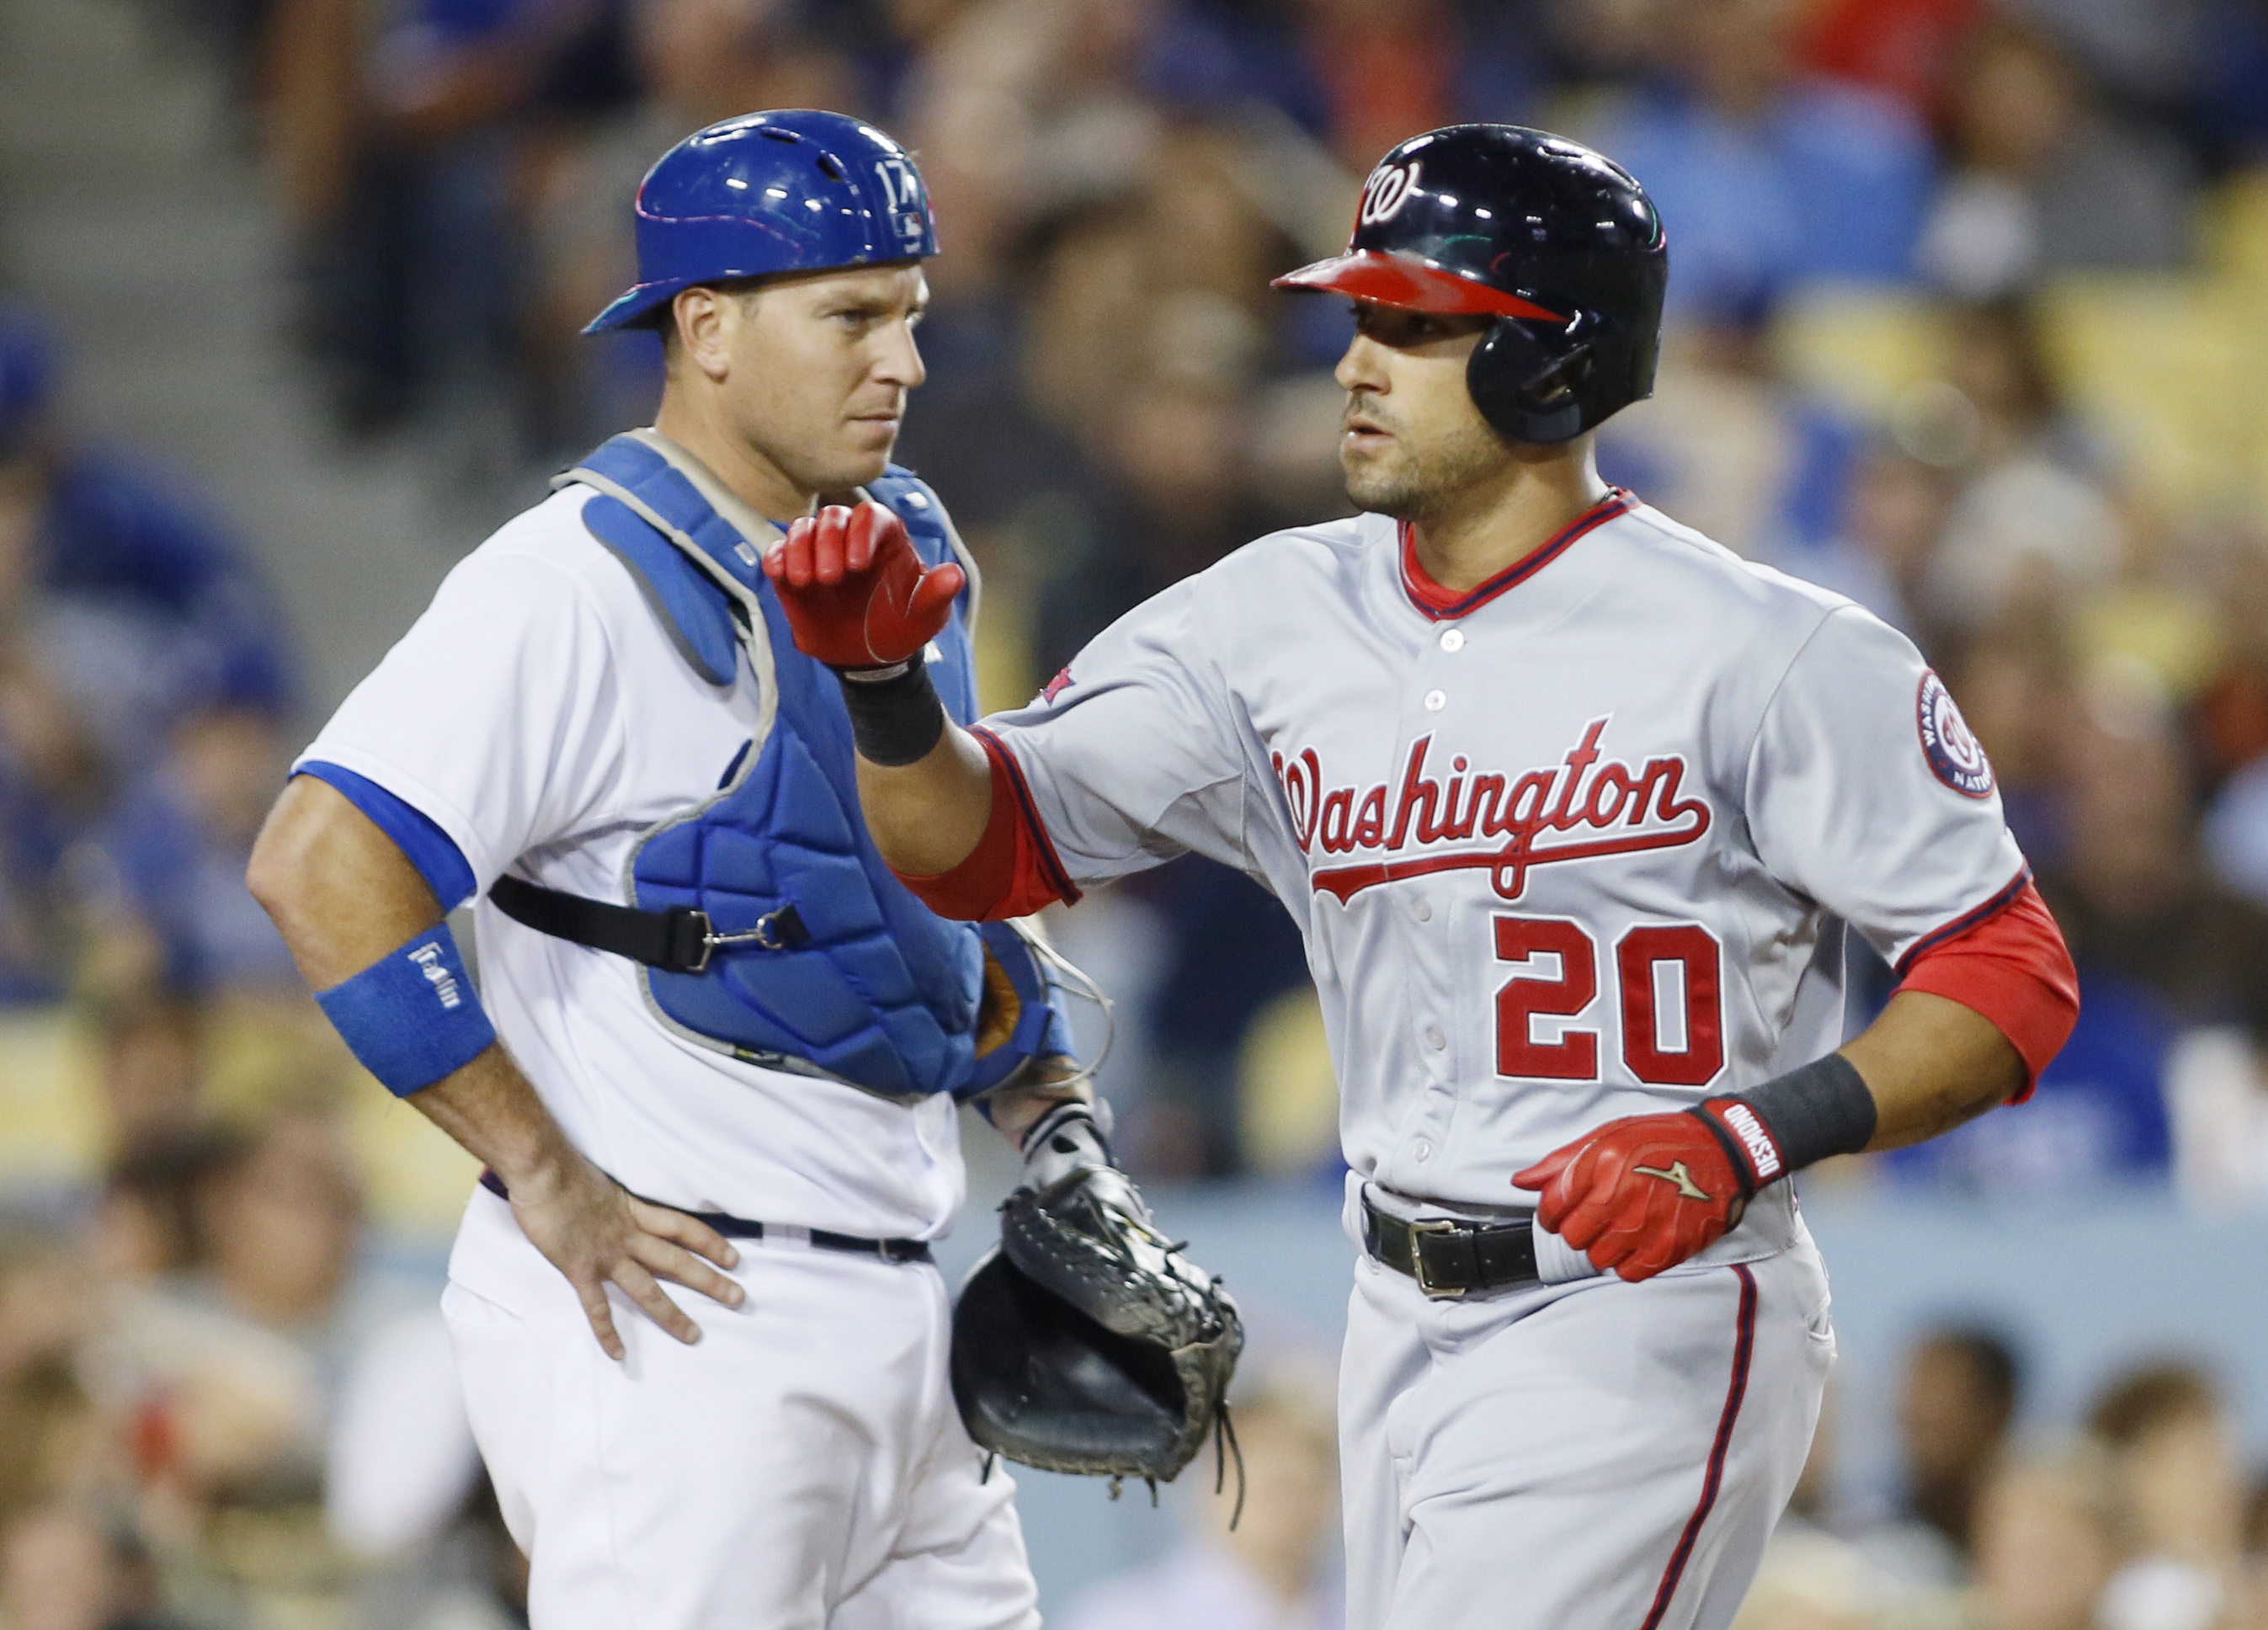 Ian Desmond 'forever' proud of what Nationals have built